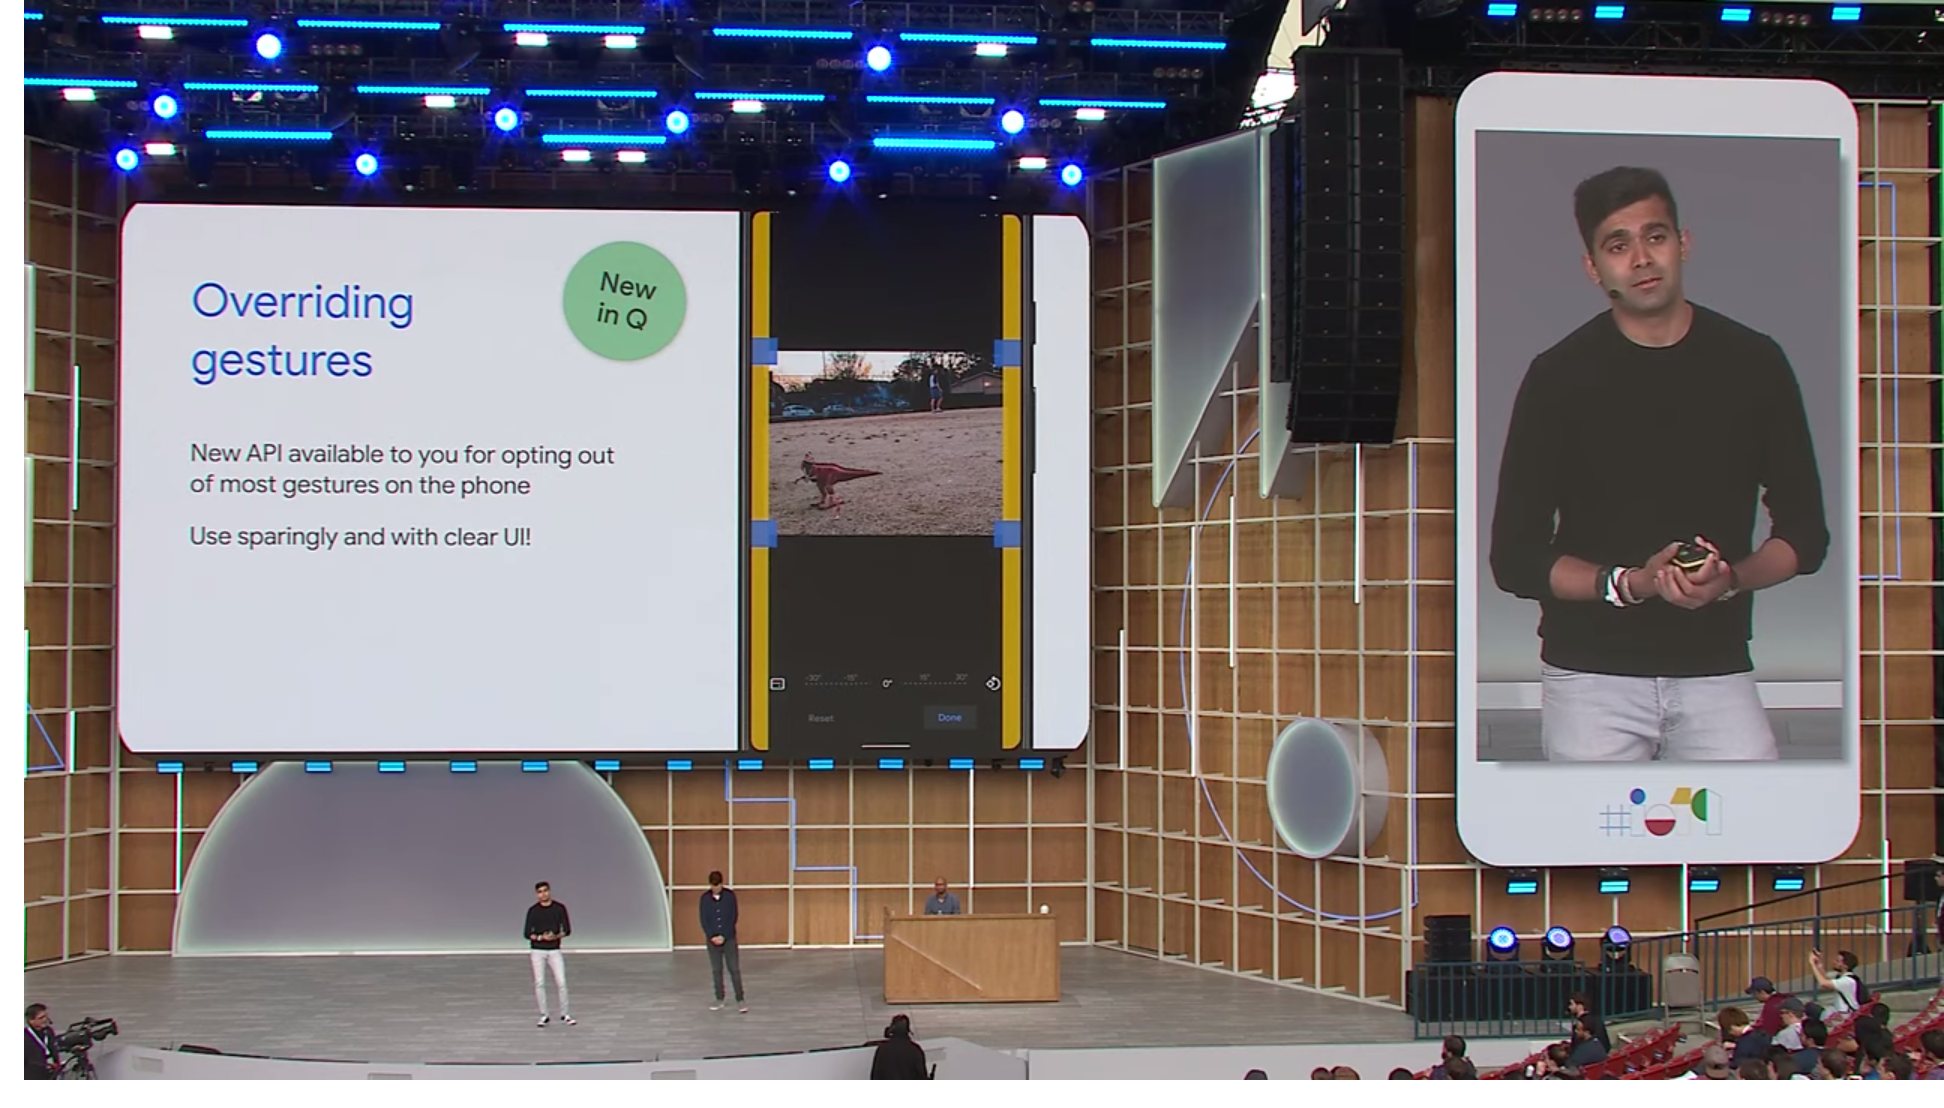 Android Q will include gesture and 3-button navigation as default